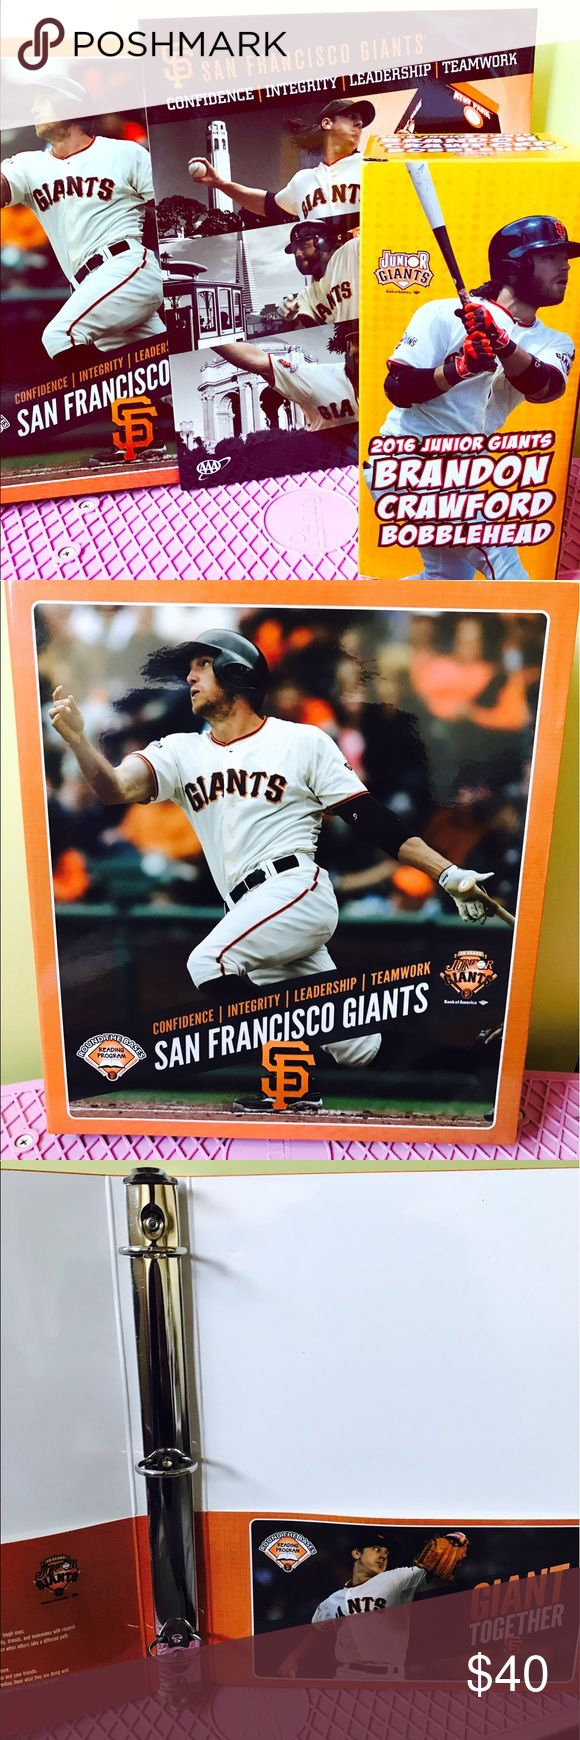 SAN FRANCISCO GIANTS bobble head, folder, & binder 2016 San Francisco giants Brandon Crawford bobblehead, with matching 3 ring binder and folder. One of a kind, can't find these in many stores. SF GIANTS bobblehead range from $59.99 not including tax or any other perk. It's a great deal. Make me an offer! San Francisco Giants Other